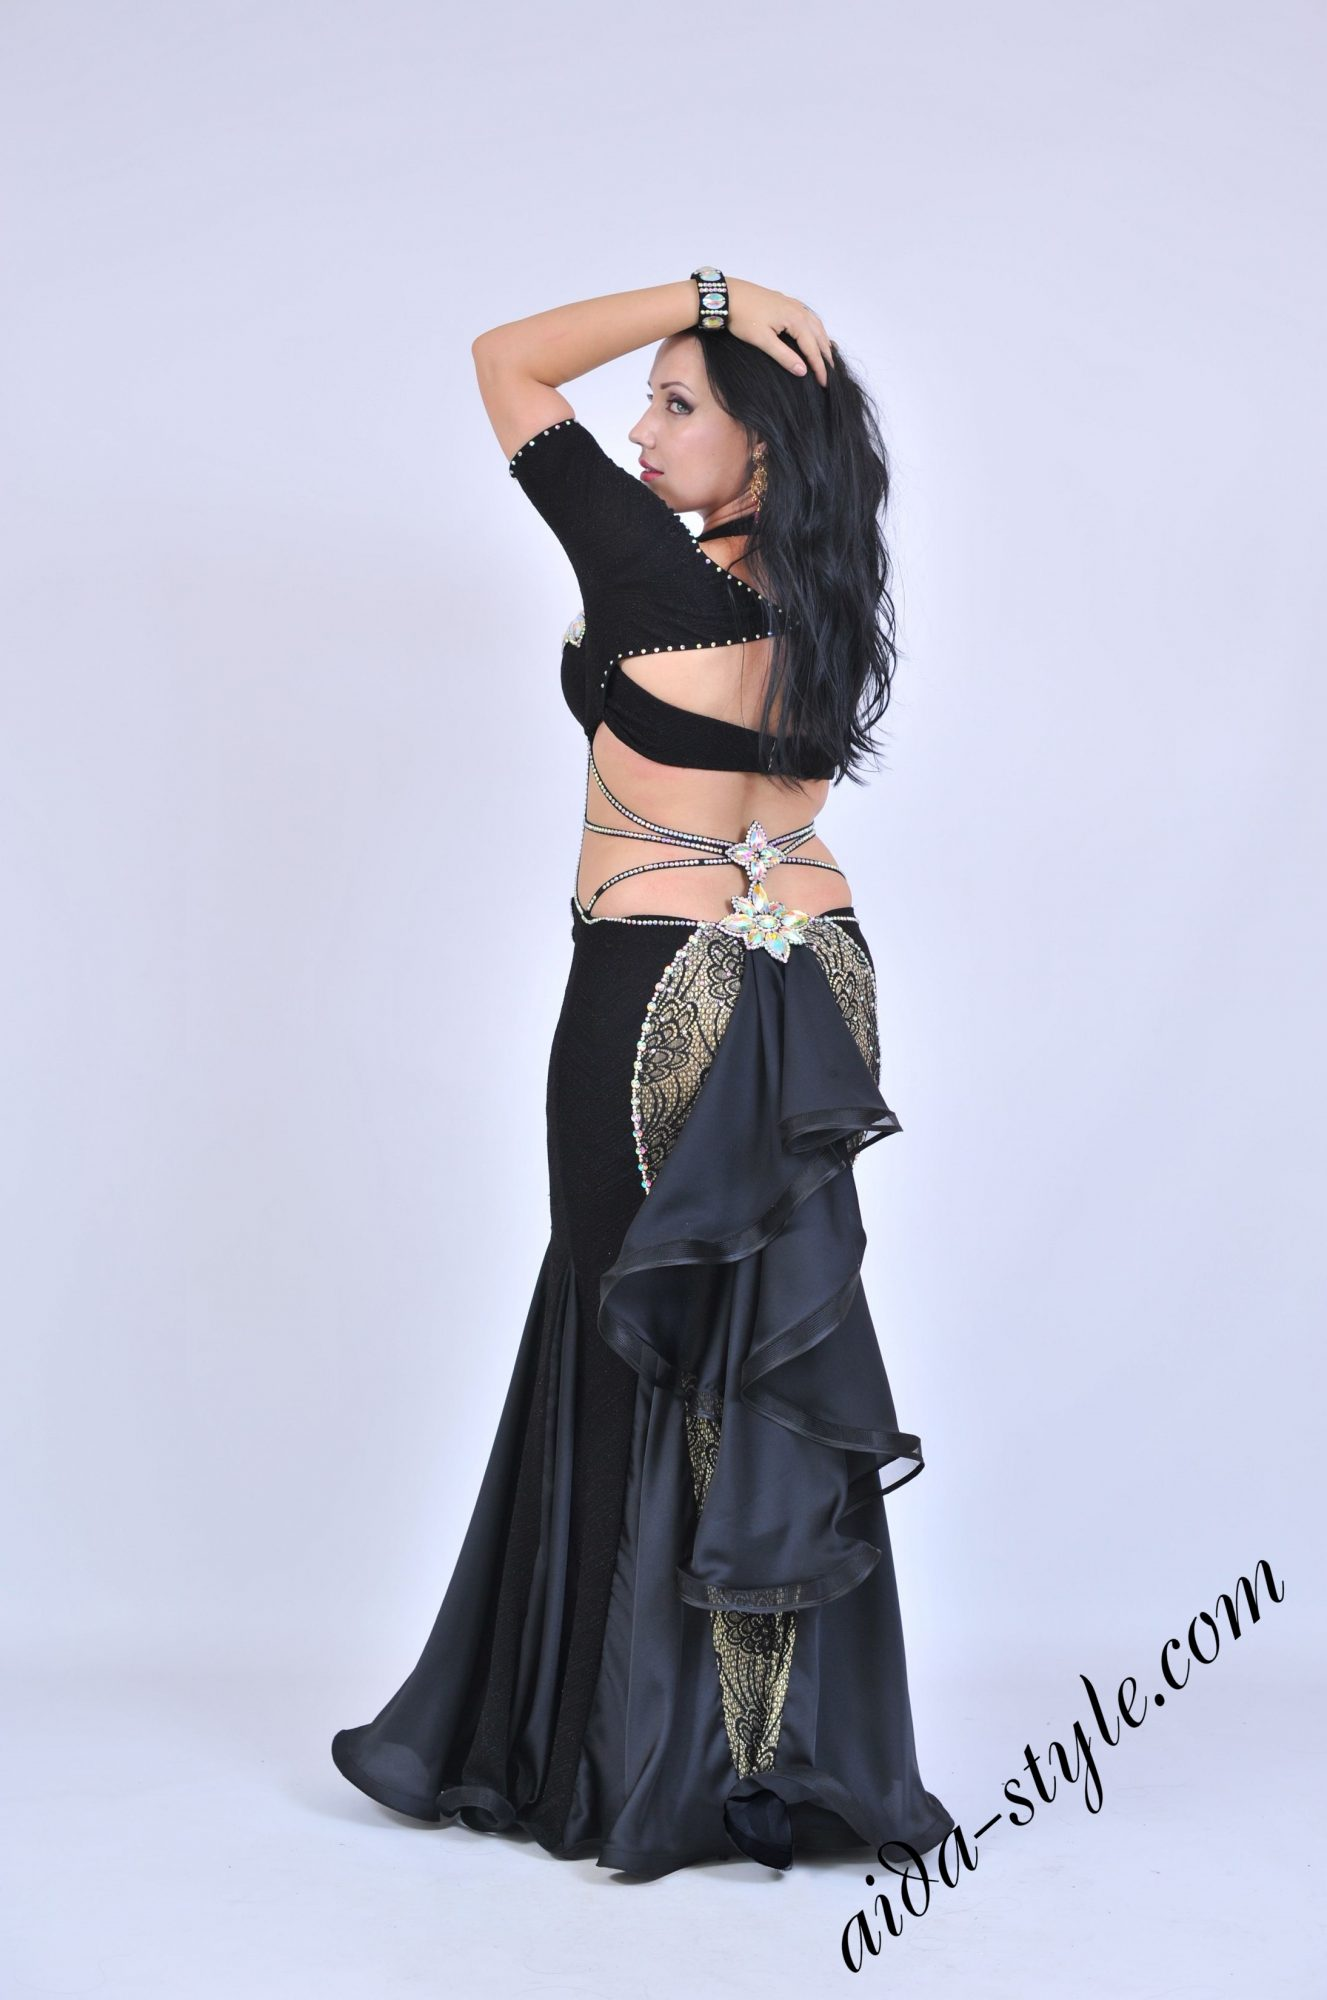 Black belly dance dress with hidden belly and short sleeves